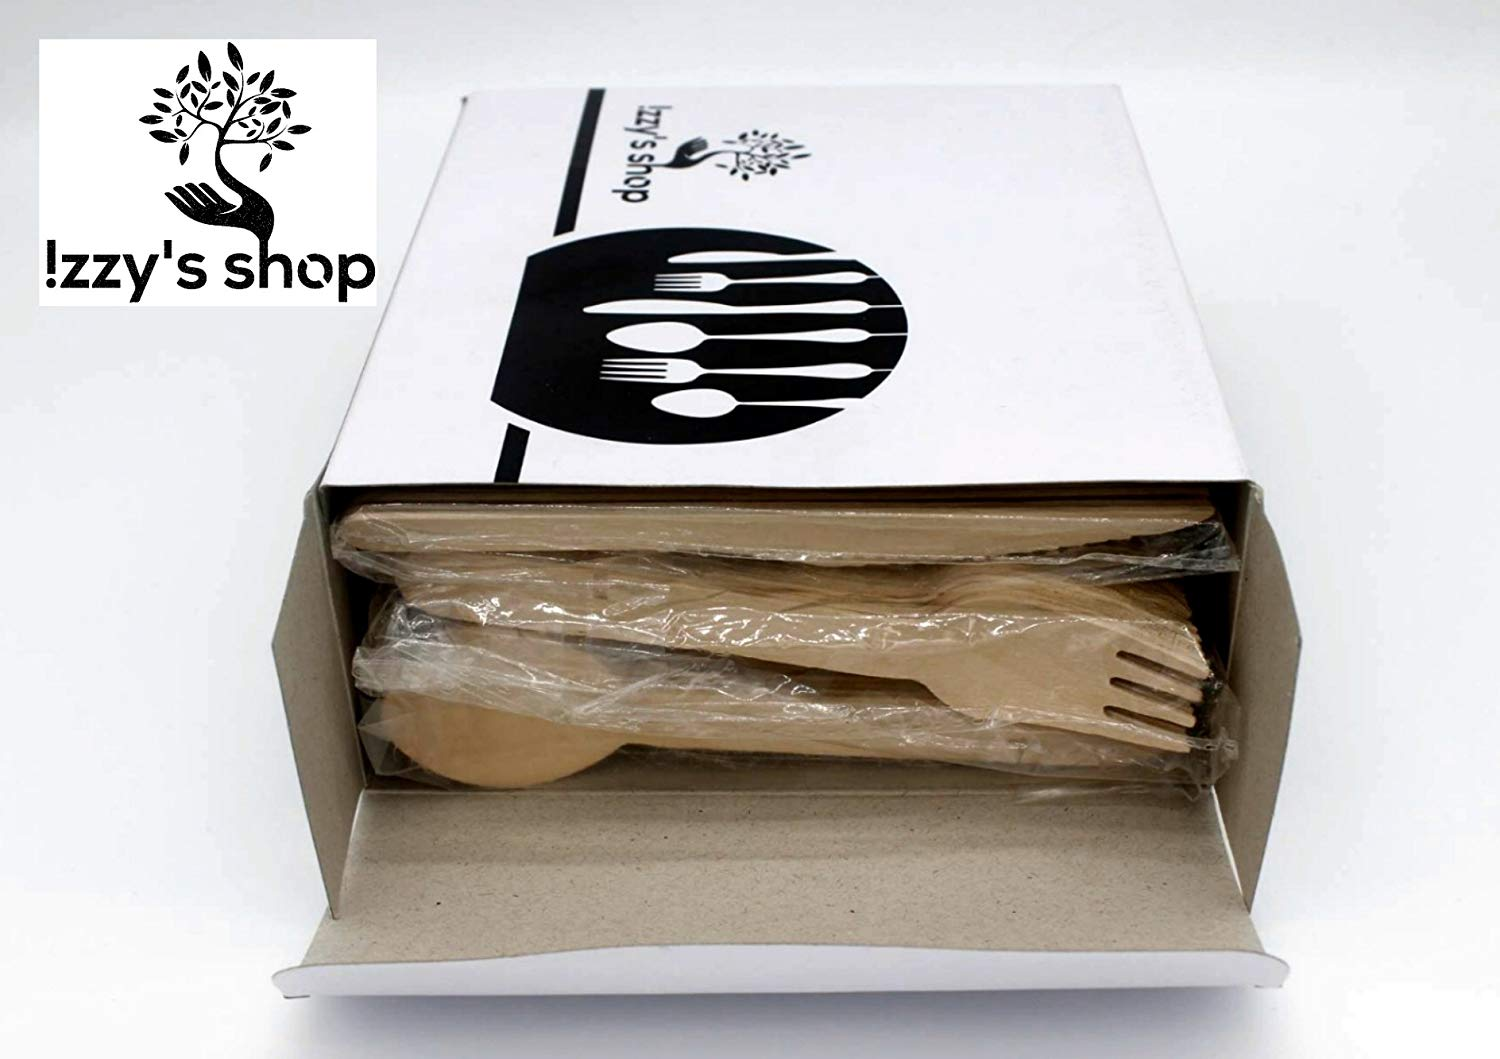 Disposable Wooden Cutlery Set - Izzy's Shop 100% Natural, Eco-Friendly, Biodegradable & Compostable Birchwood Flatware Set for Parties, Camping, Weddings & Everyday Use – Pack of 300 Utensils